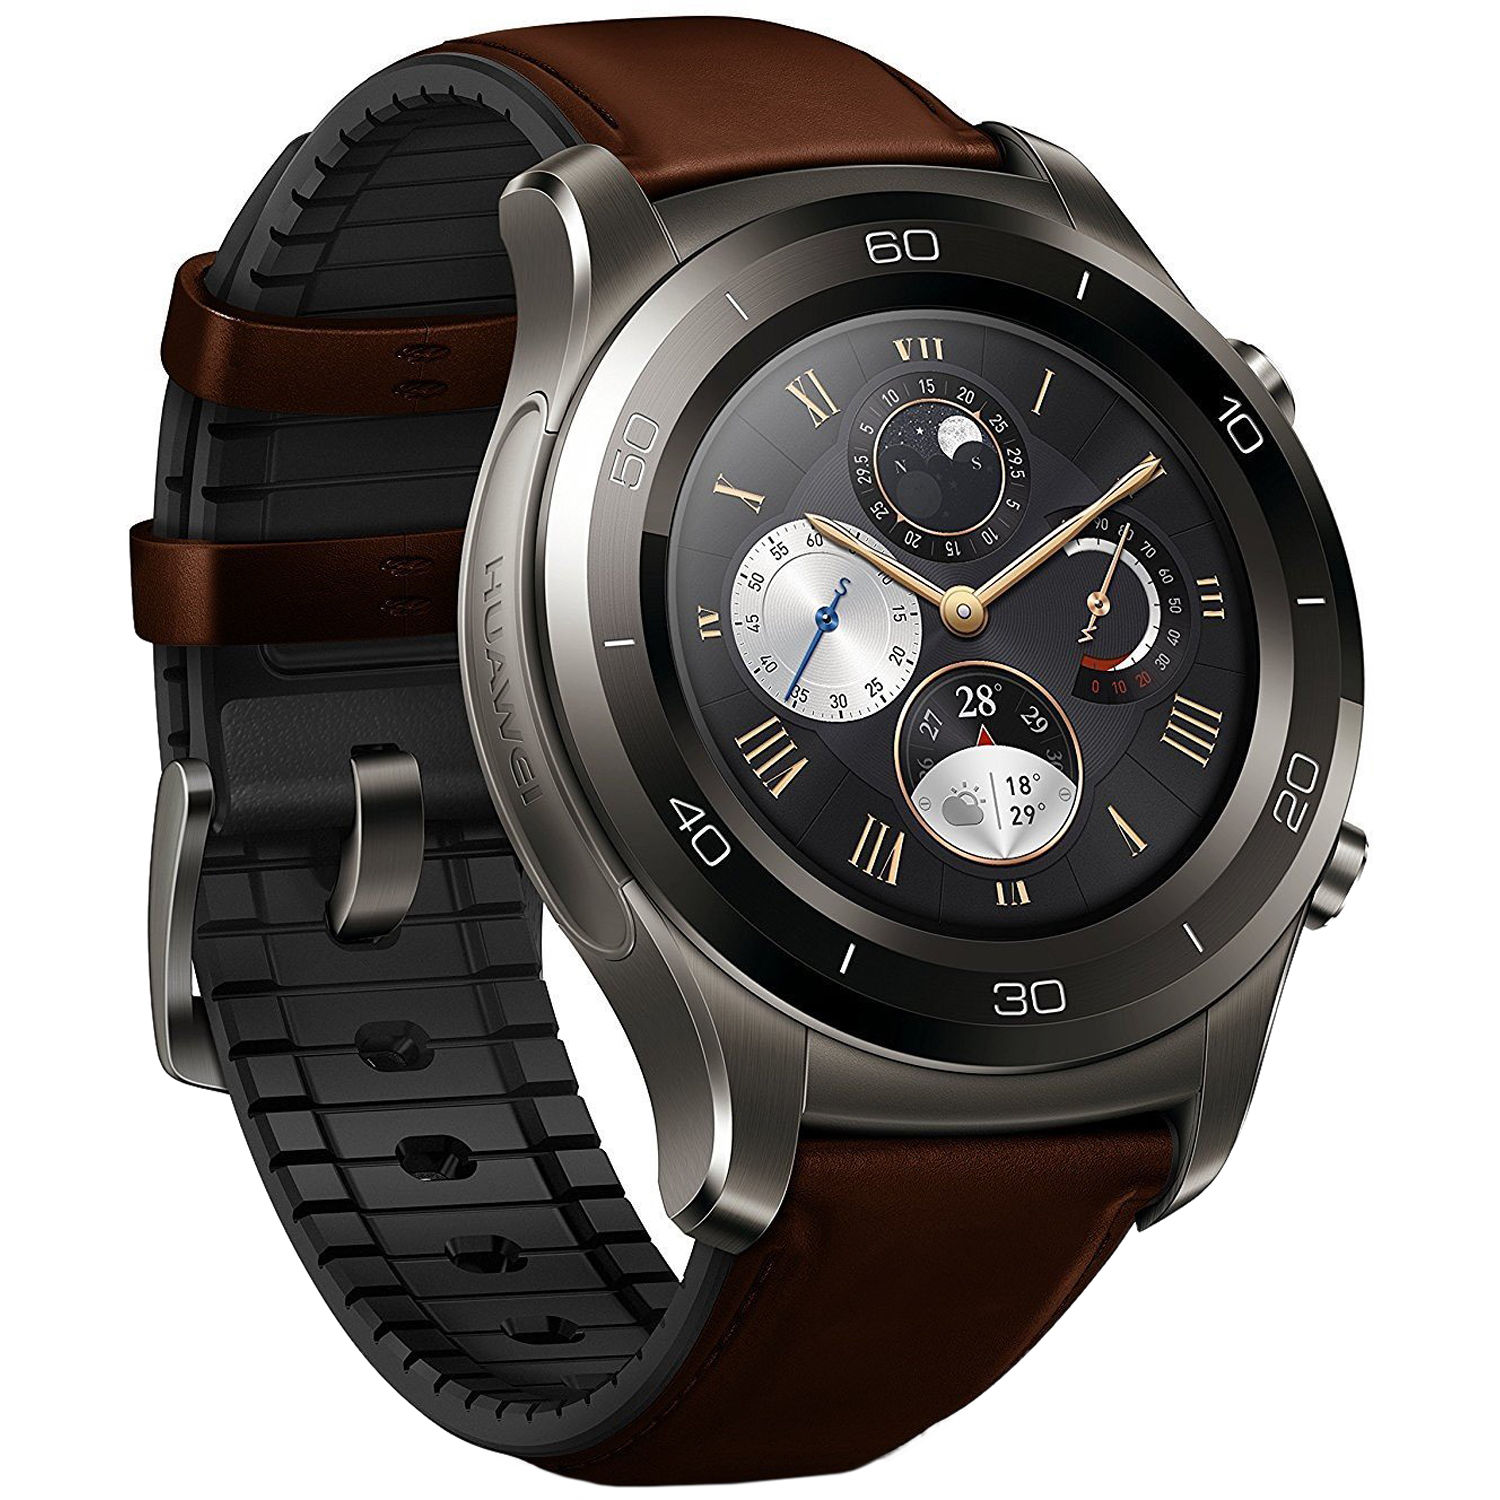 Image result for huawei smartwatch